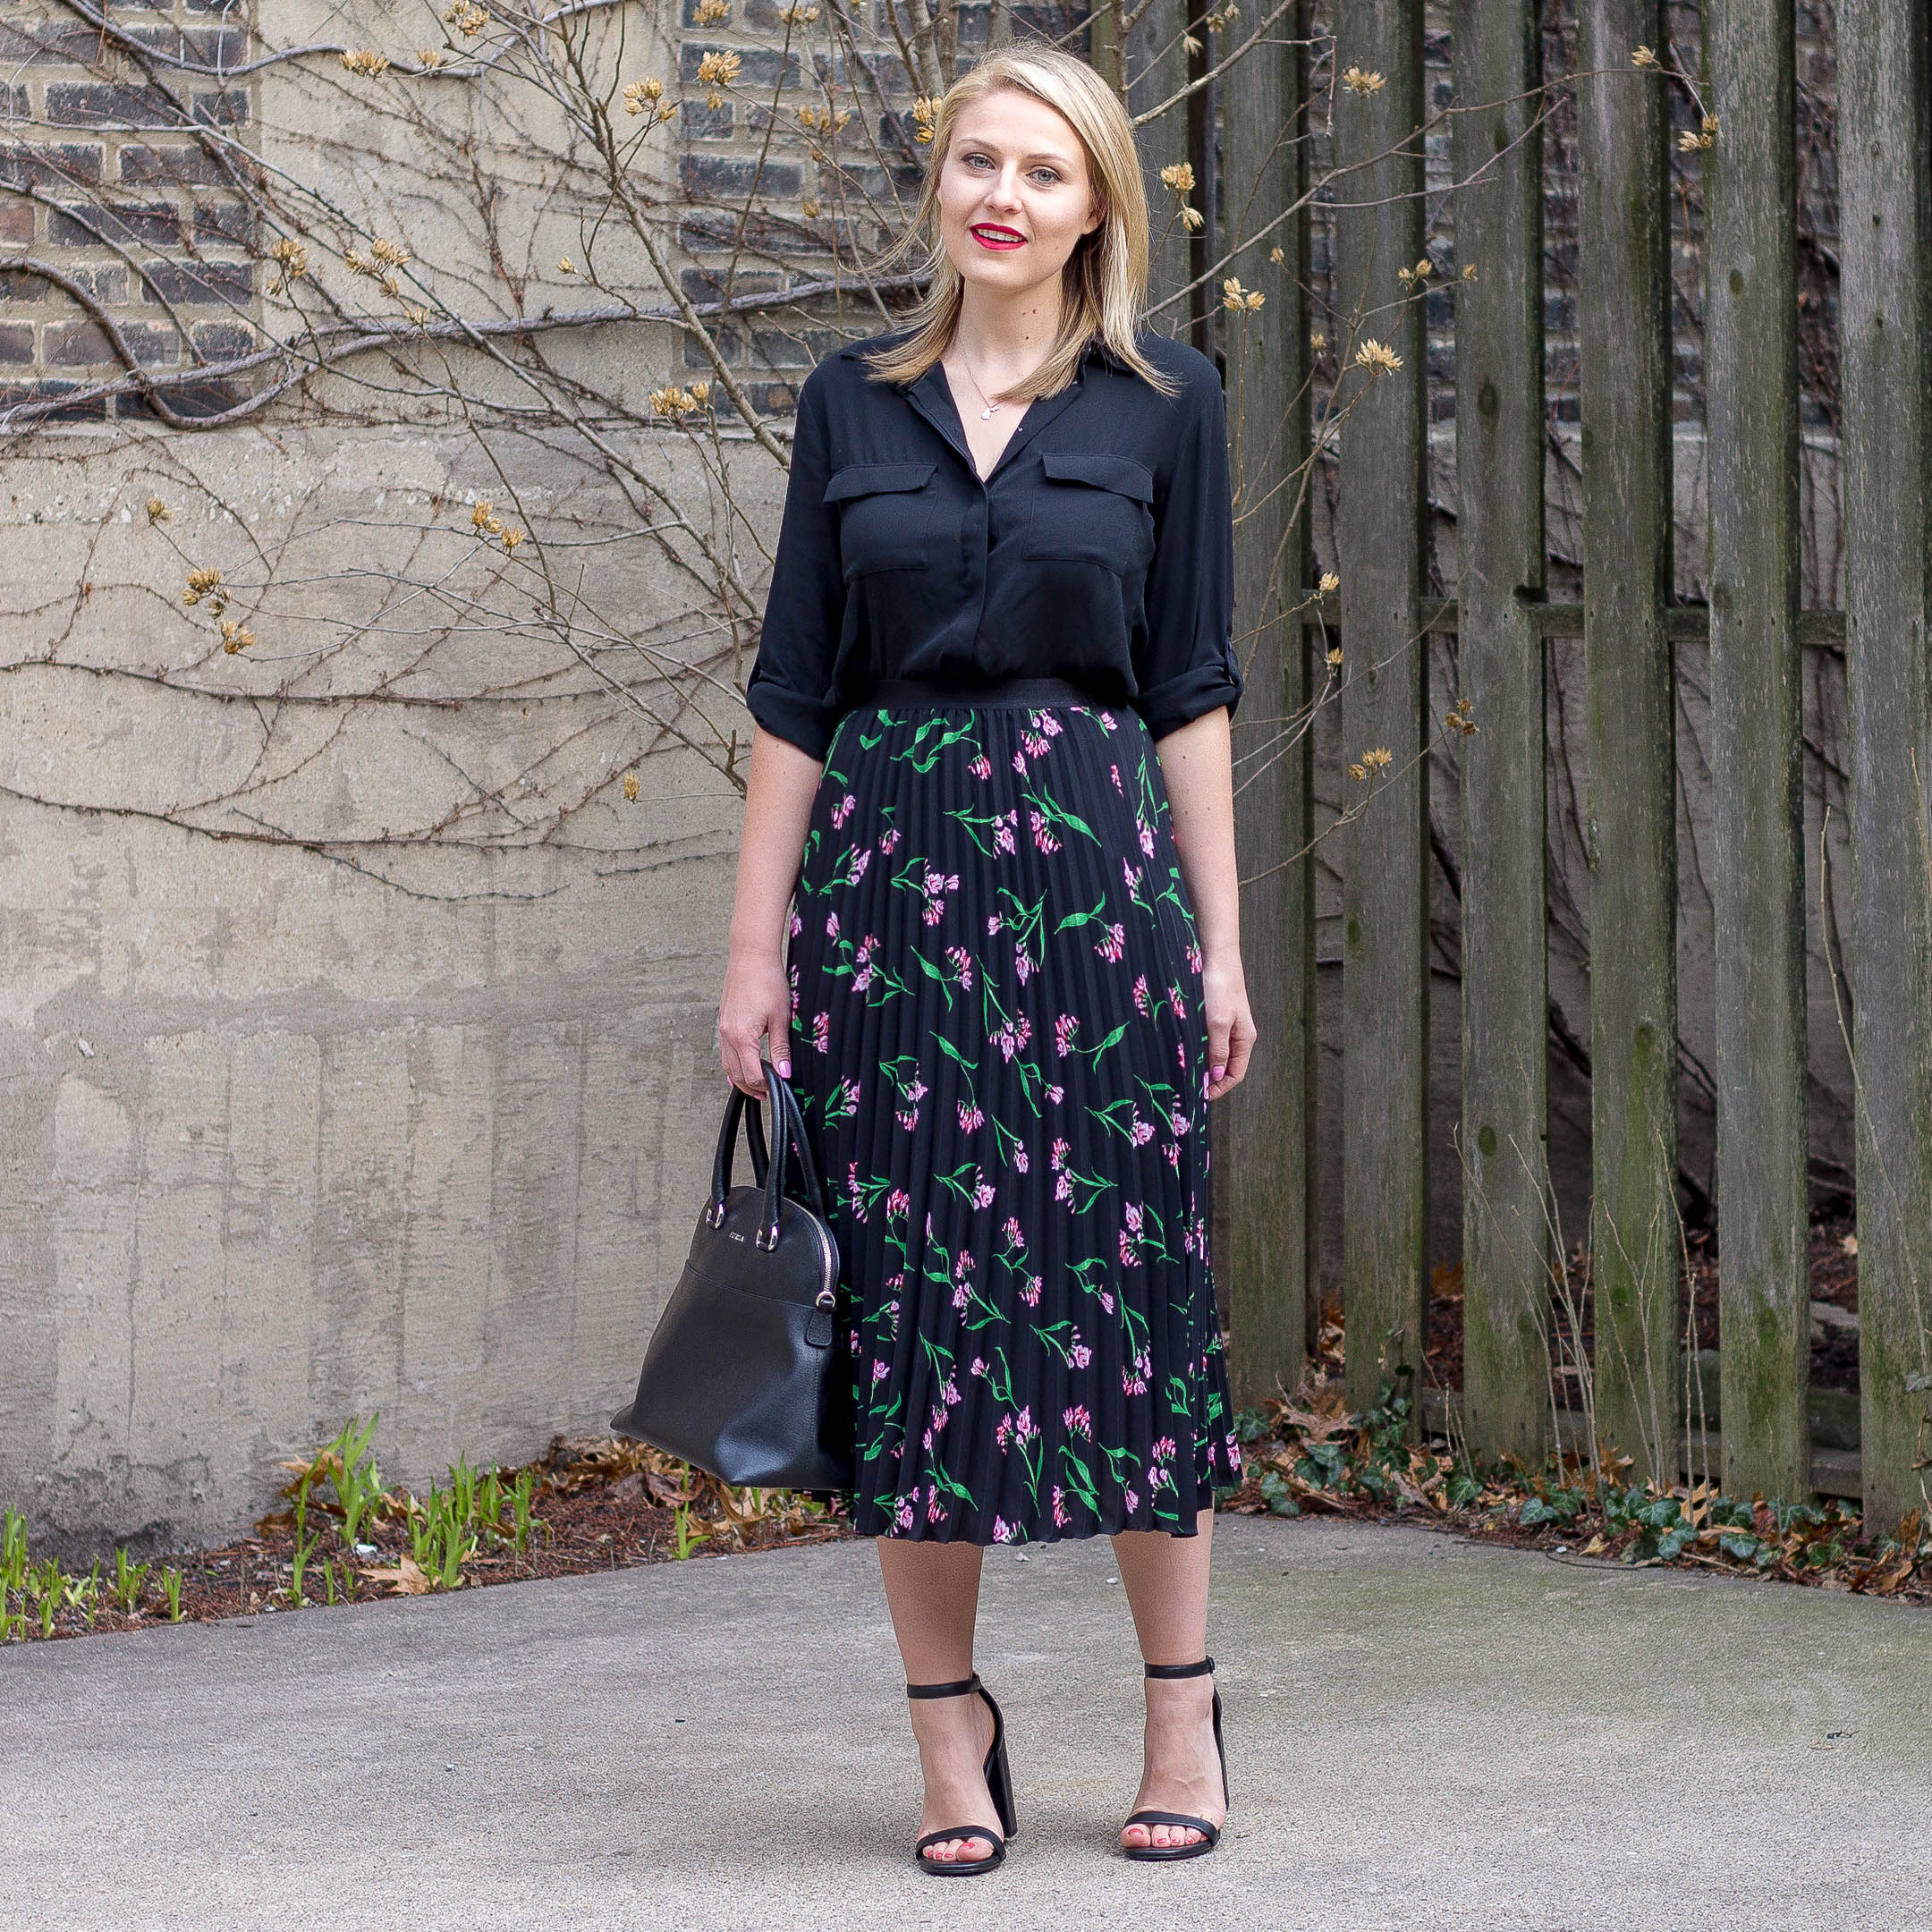 The best midi skirts for under $100